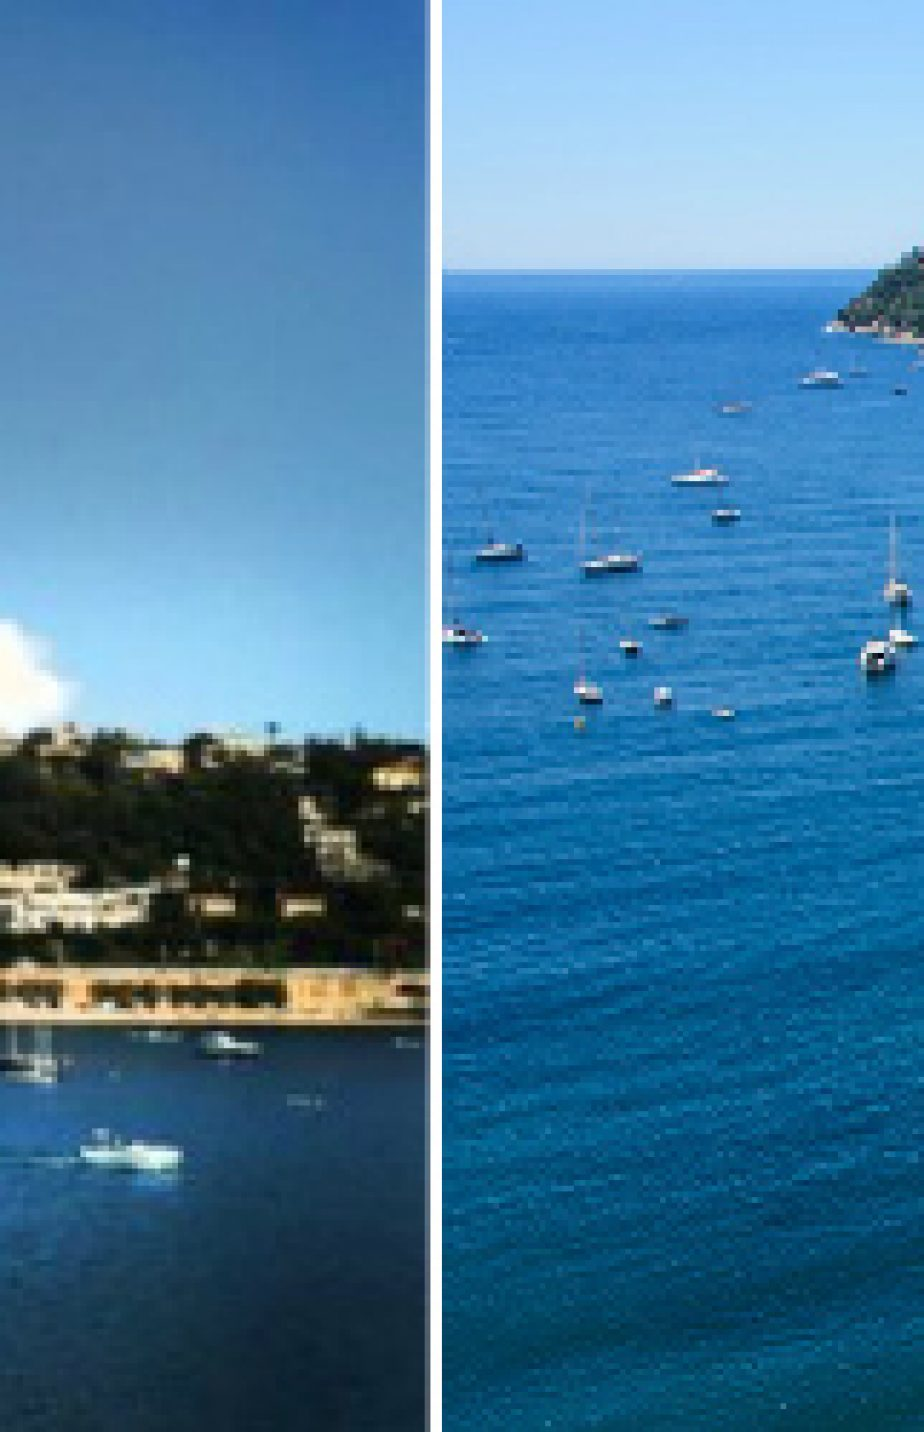 January 2017 – Reception, Lunch and AGM in Villefranche-sur-Mer